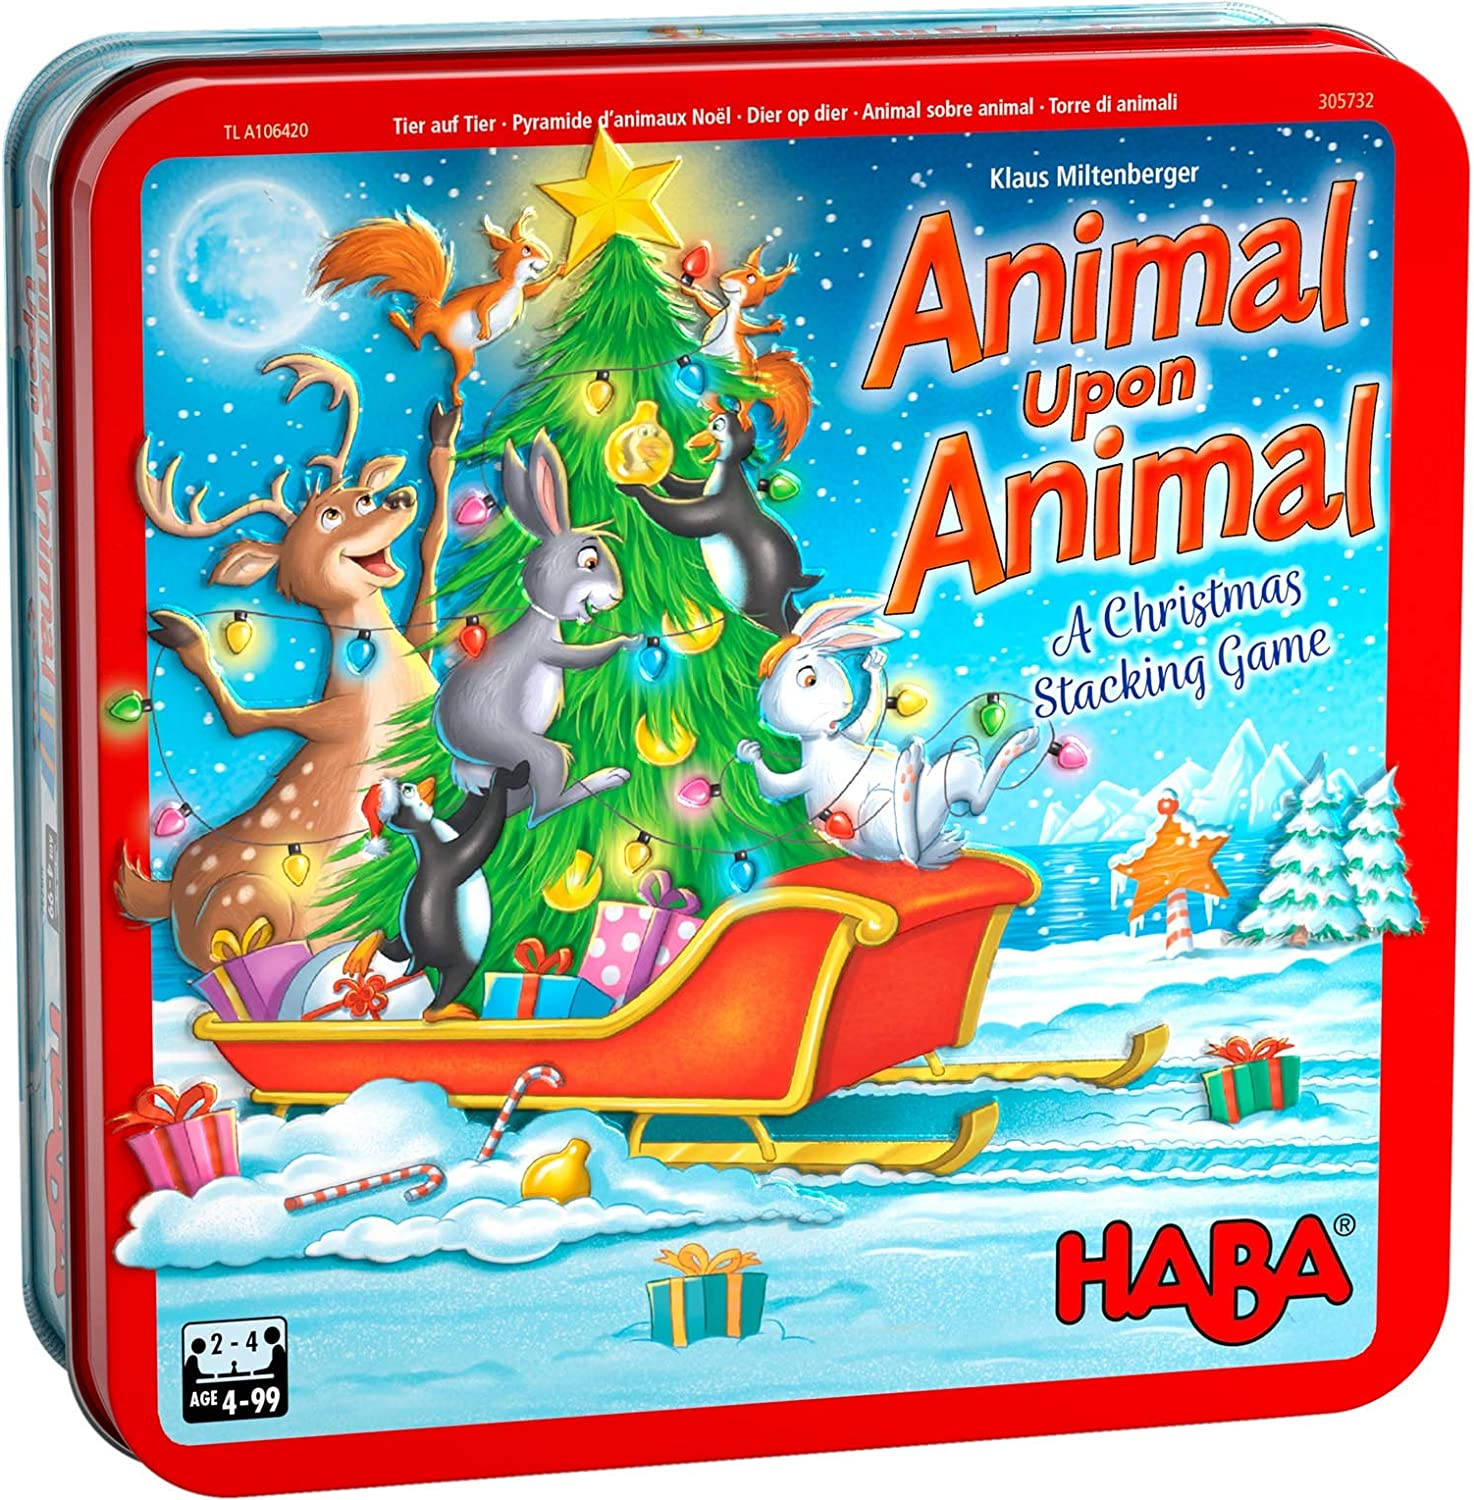 Made in Germany HABA Animal Upon Animal Christmas Limited Edition Wooden Stacking Game in Collectors Tin